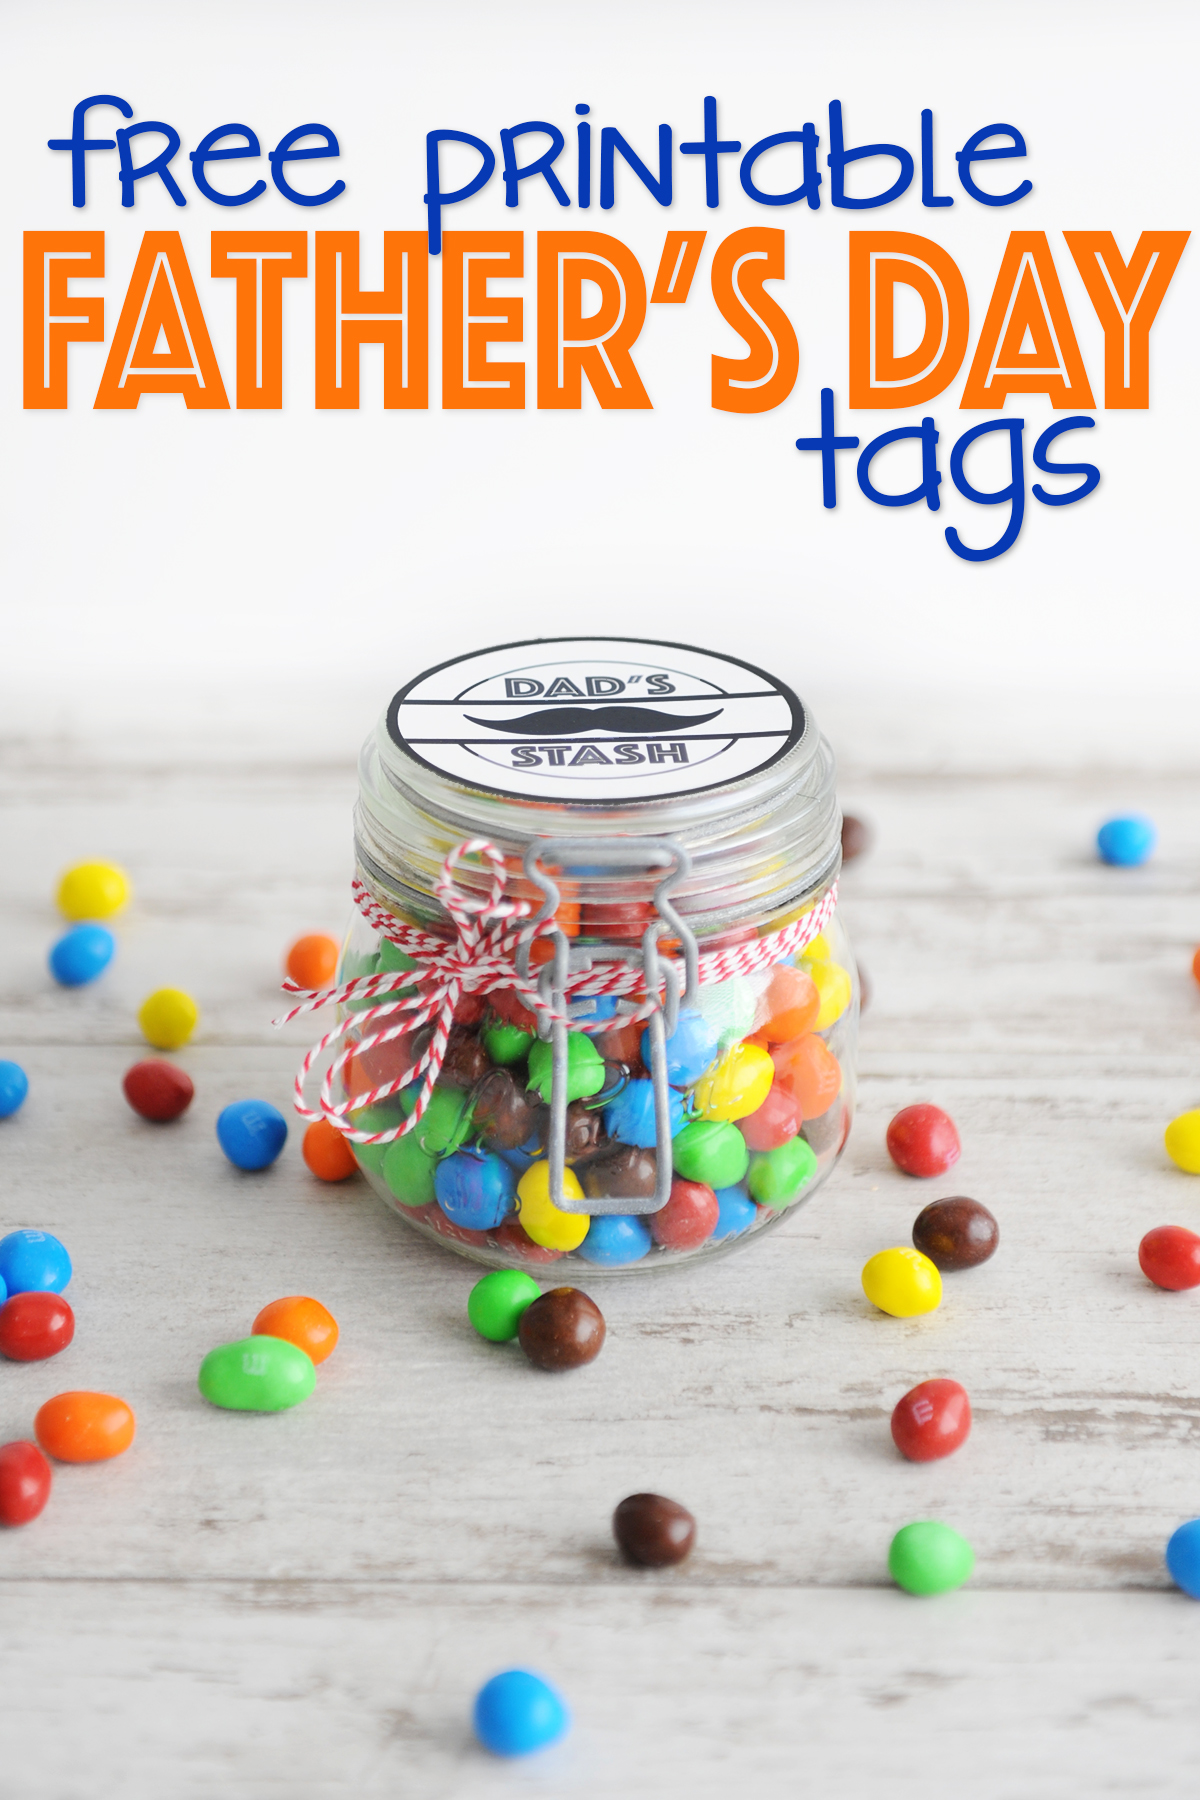 photograph about Free Printable Fathers Day Tags called Free of charge Fathers Working day Printable Tags : Dads Stash - Red